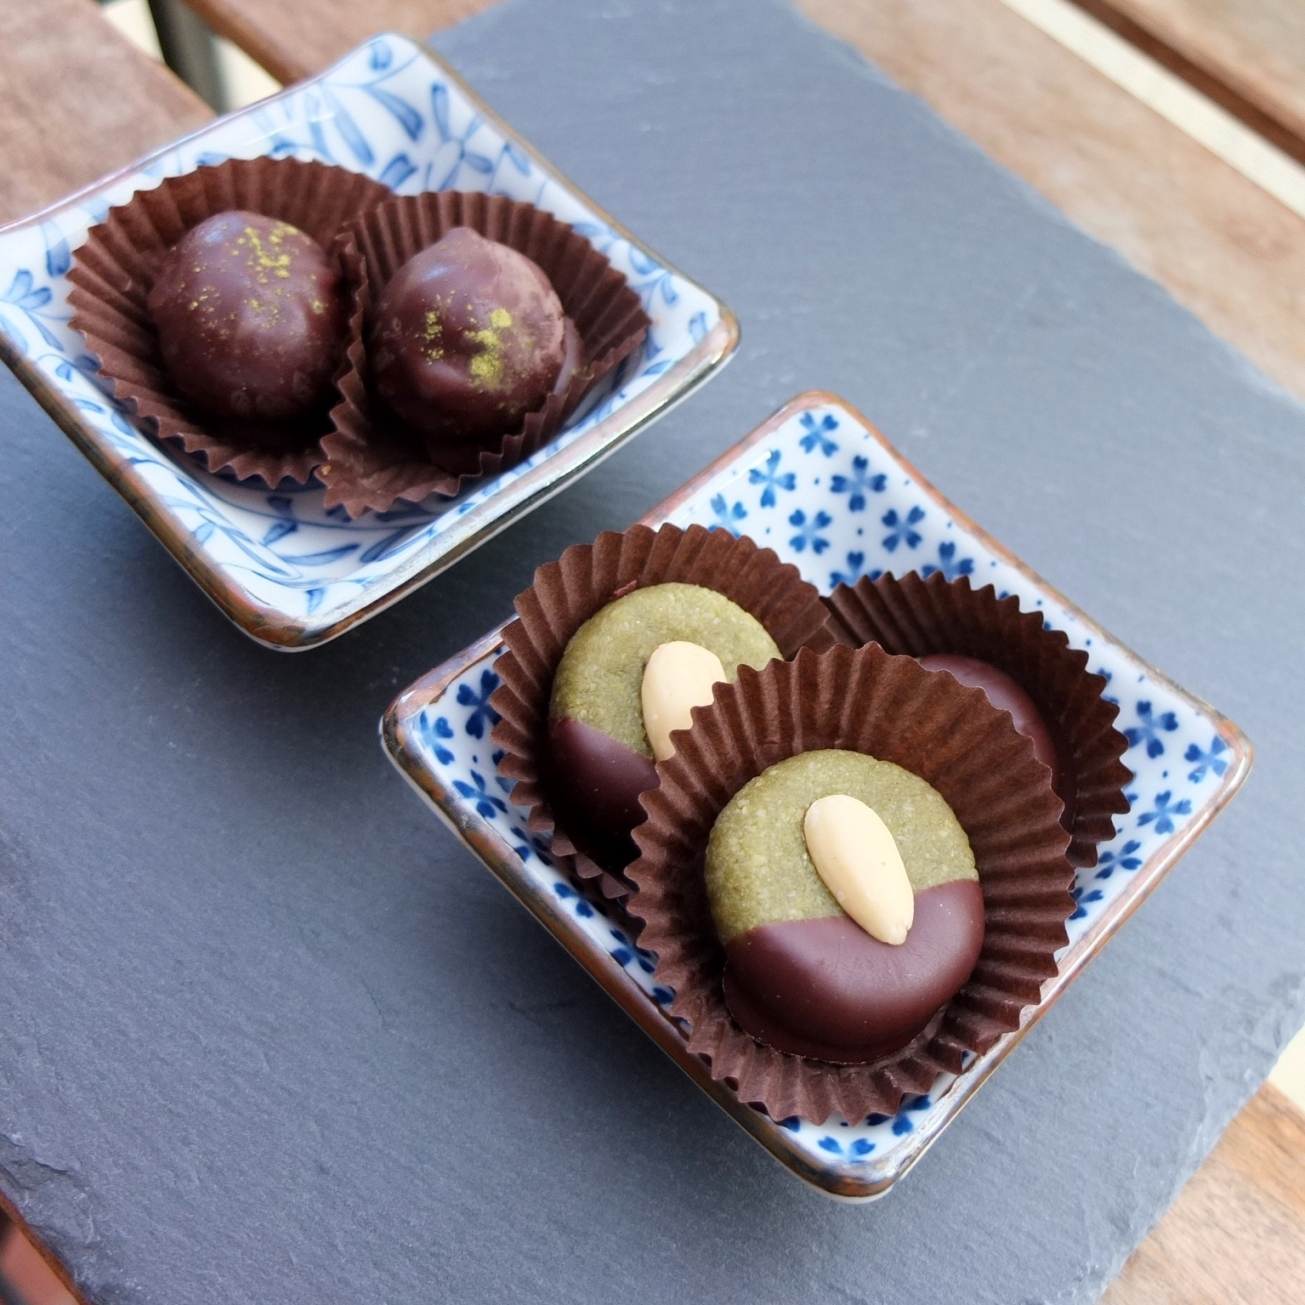 Matcha marzipans and caramels